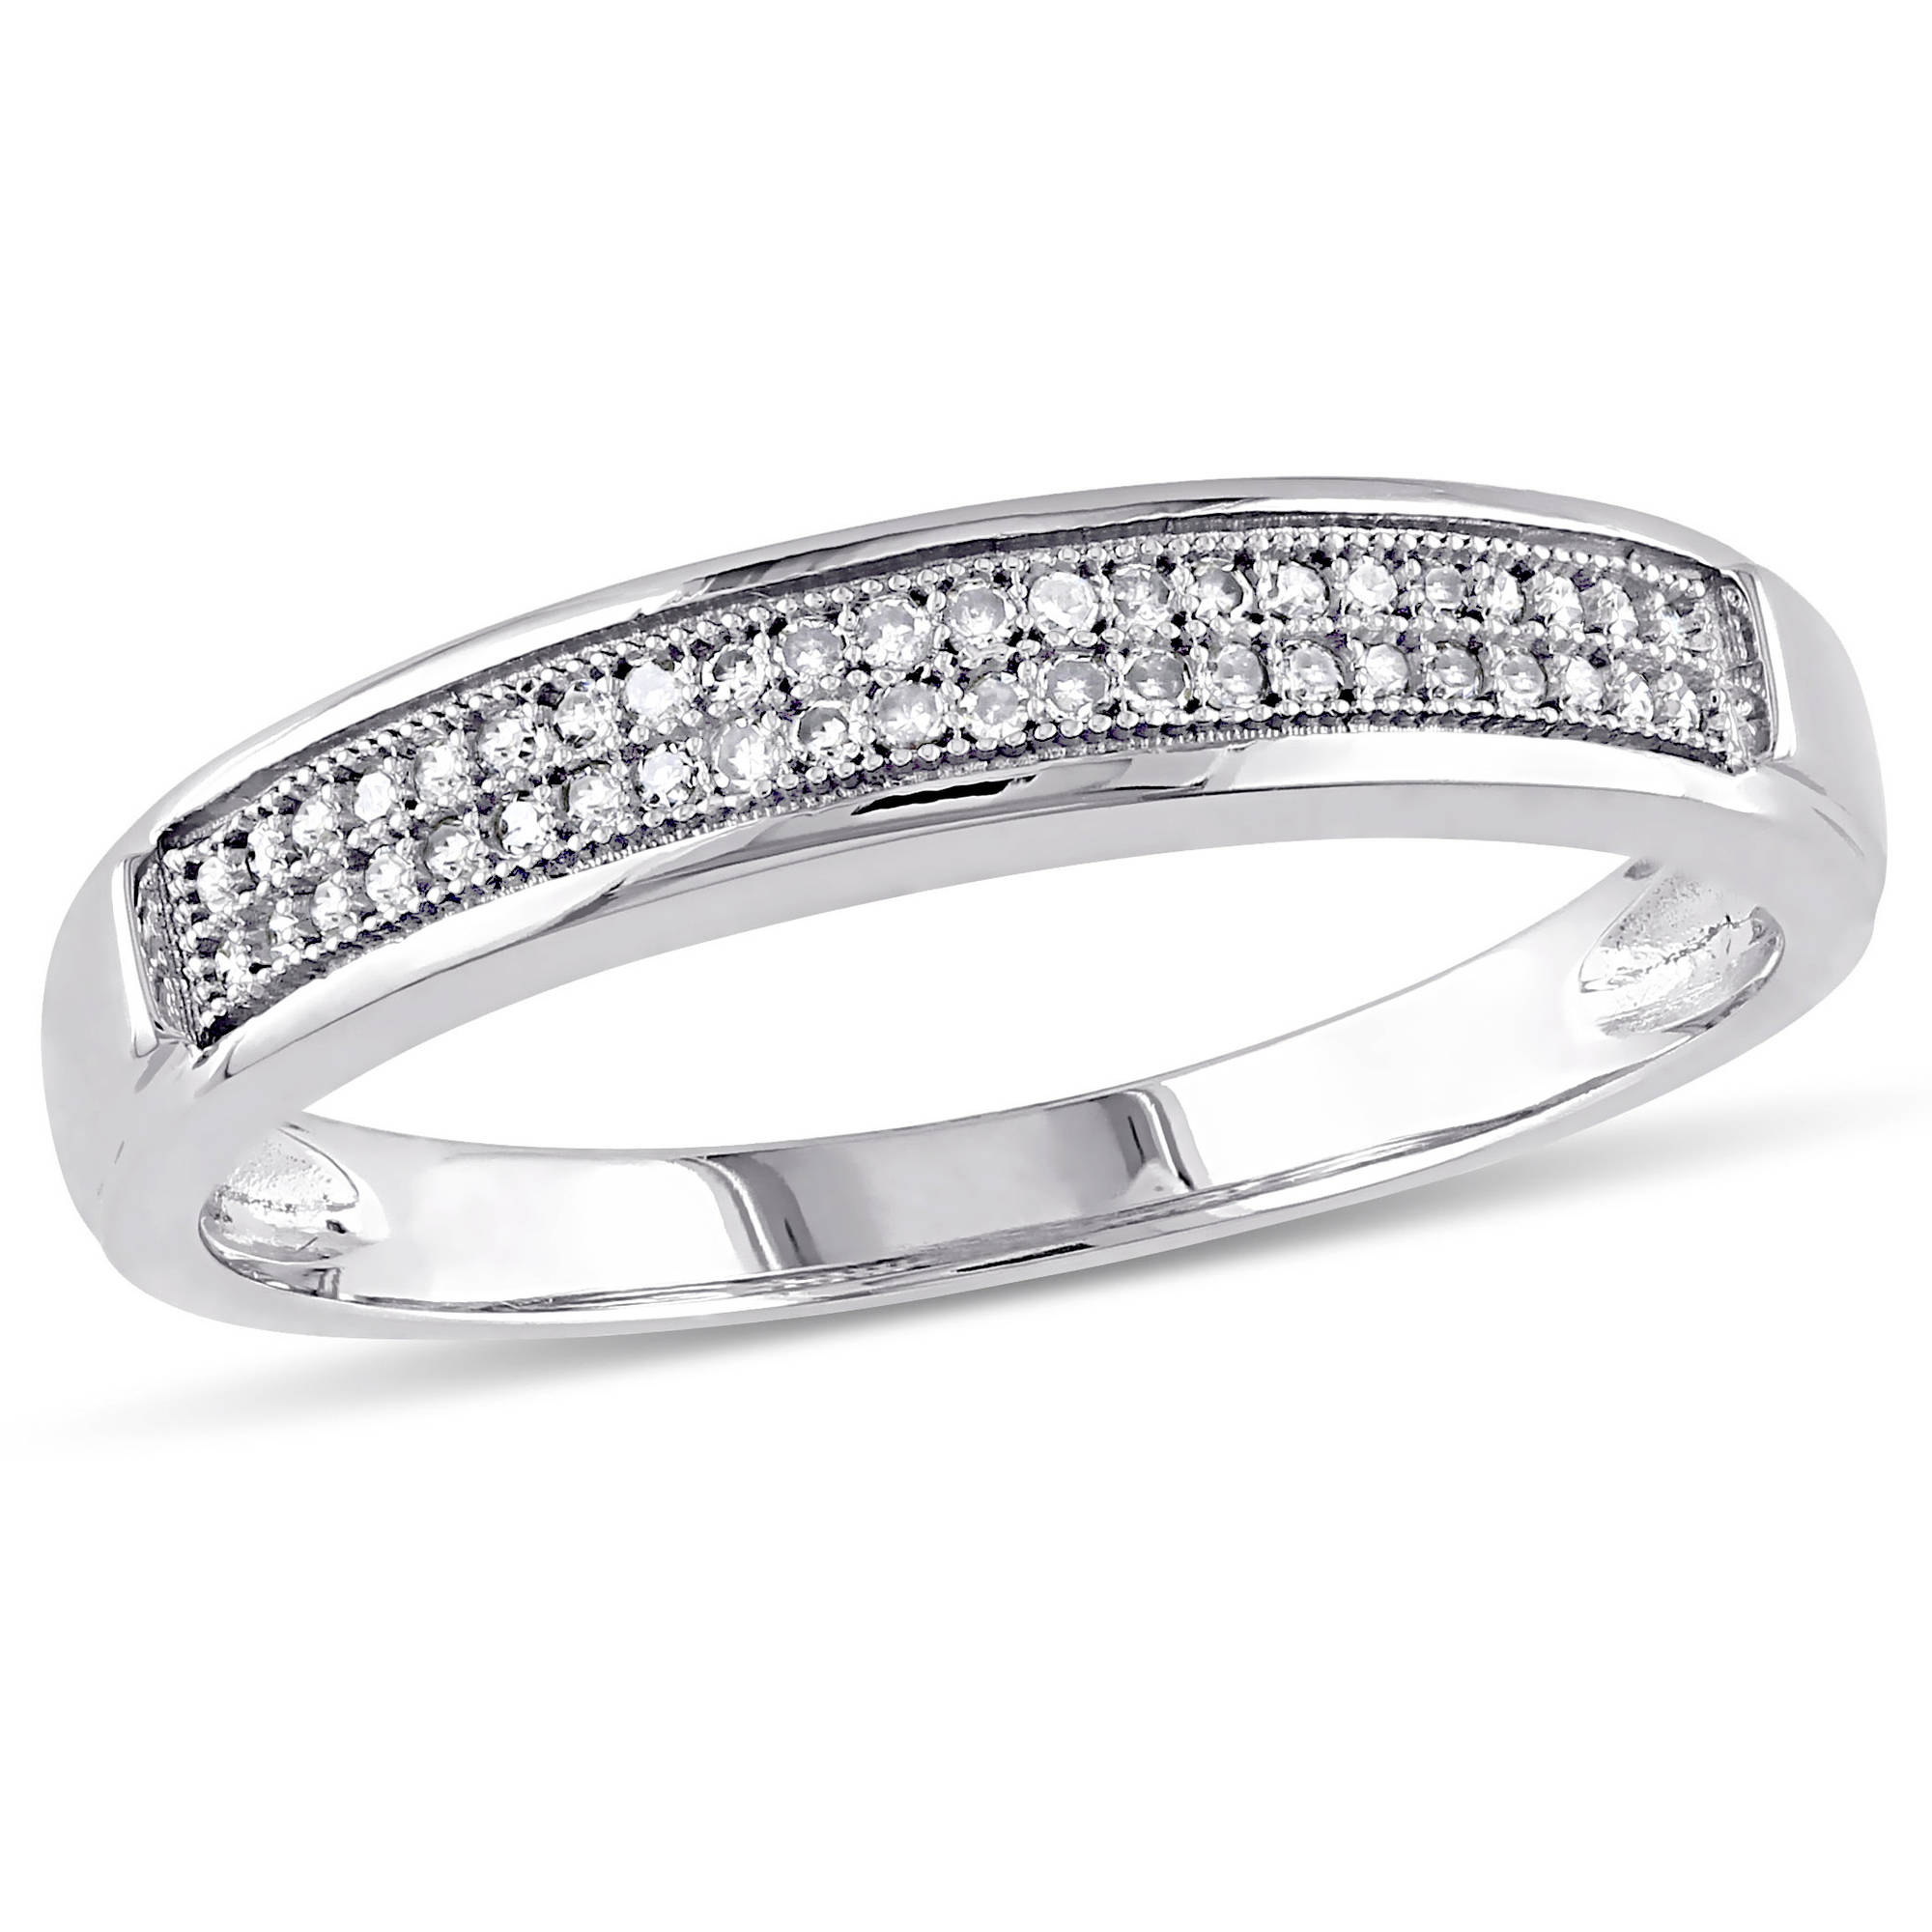 Miabella 1 8 Carat T.W. Diamond Men's Wedding Band in 10kt White Gold by Generic